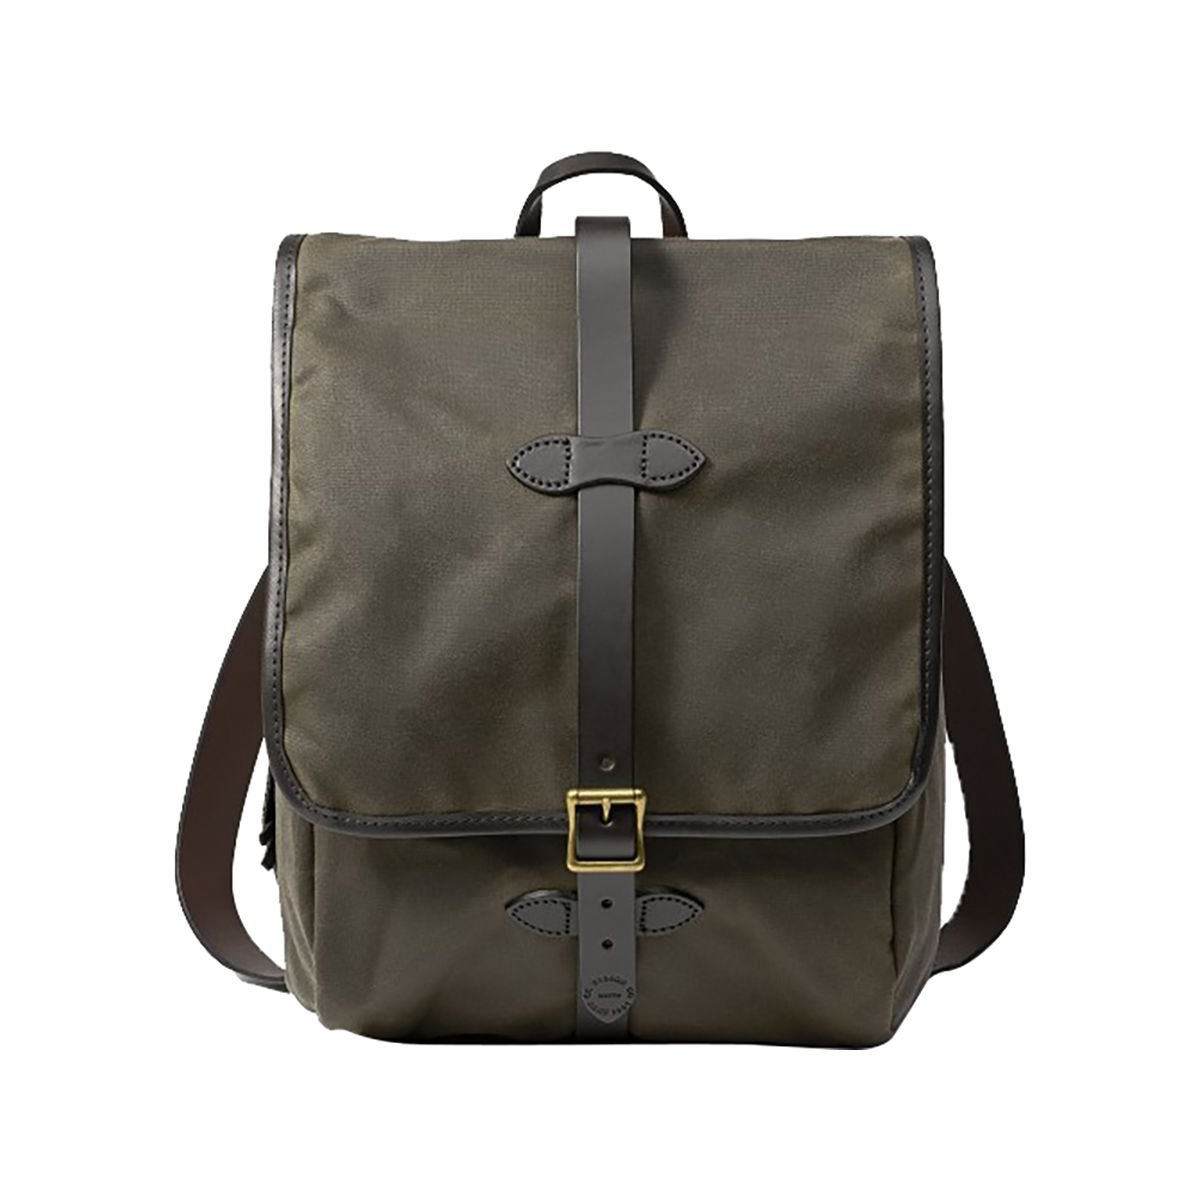 Filson Unisex Tin Cloth Backpack Otter Green 1 Backpack